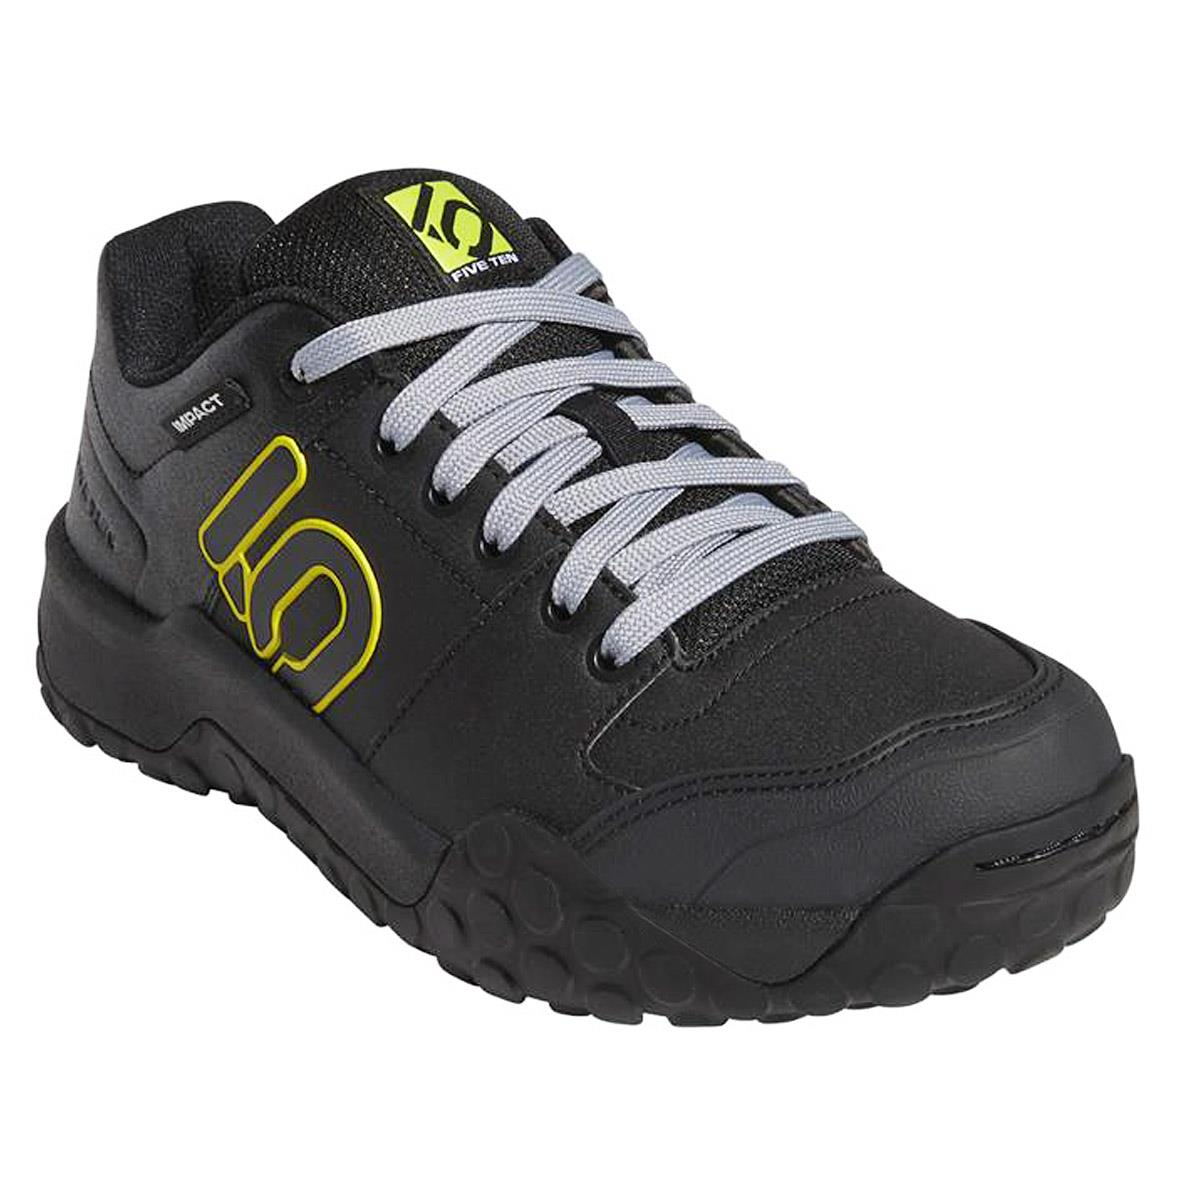 Five Ten MTB-Schuhe Impact Sam Hill Core Black/Grey/Semi Solar Yellow